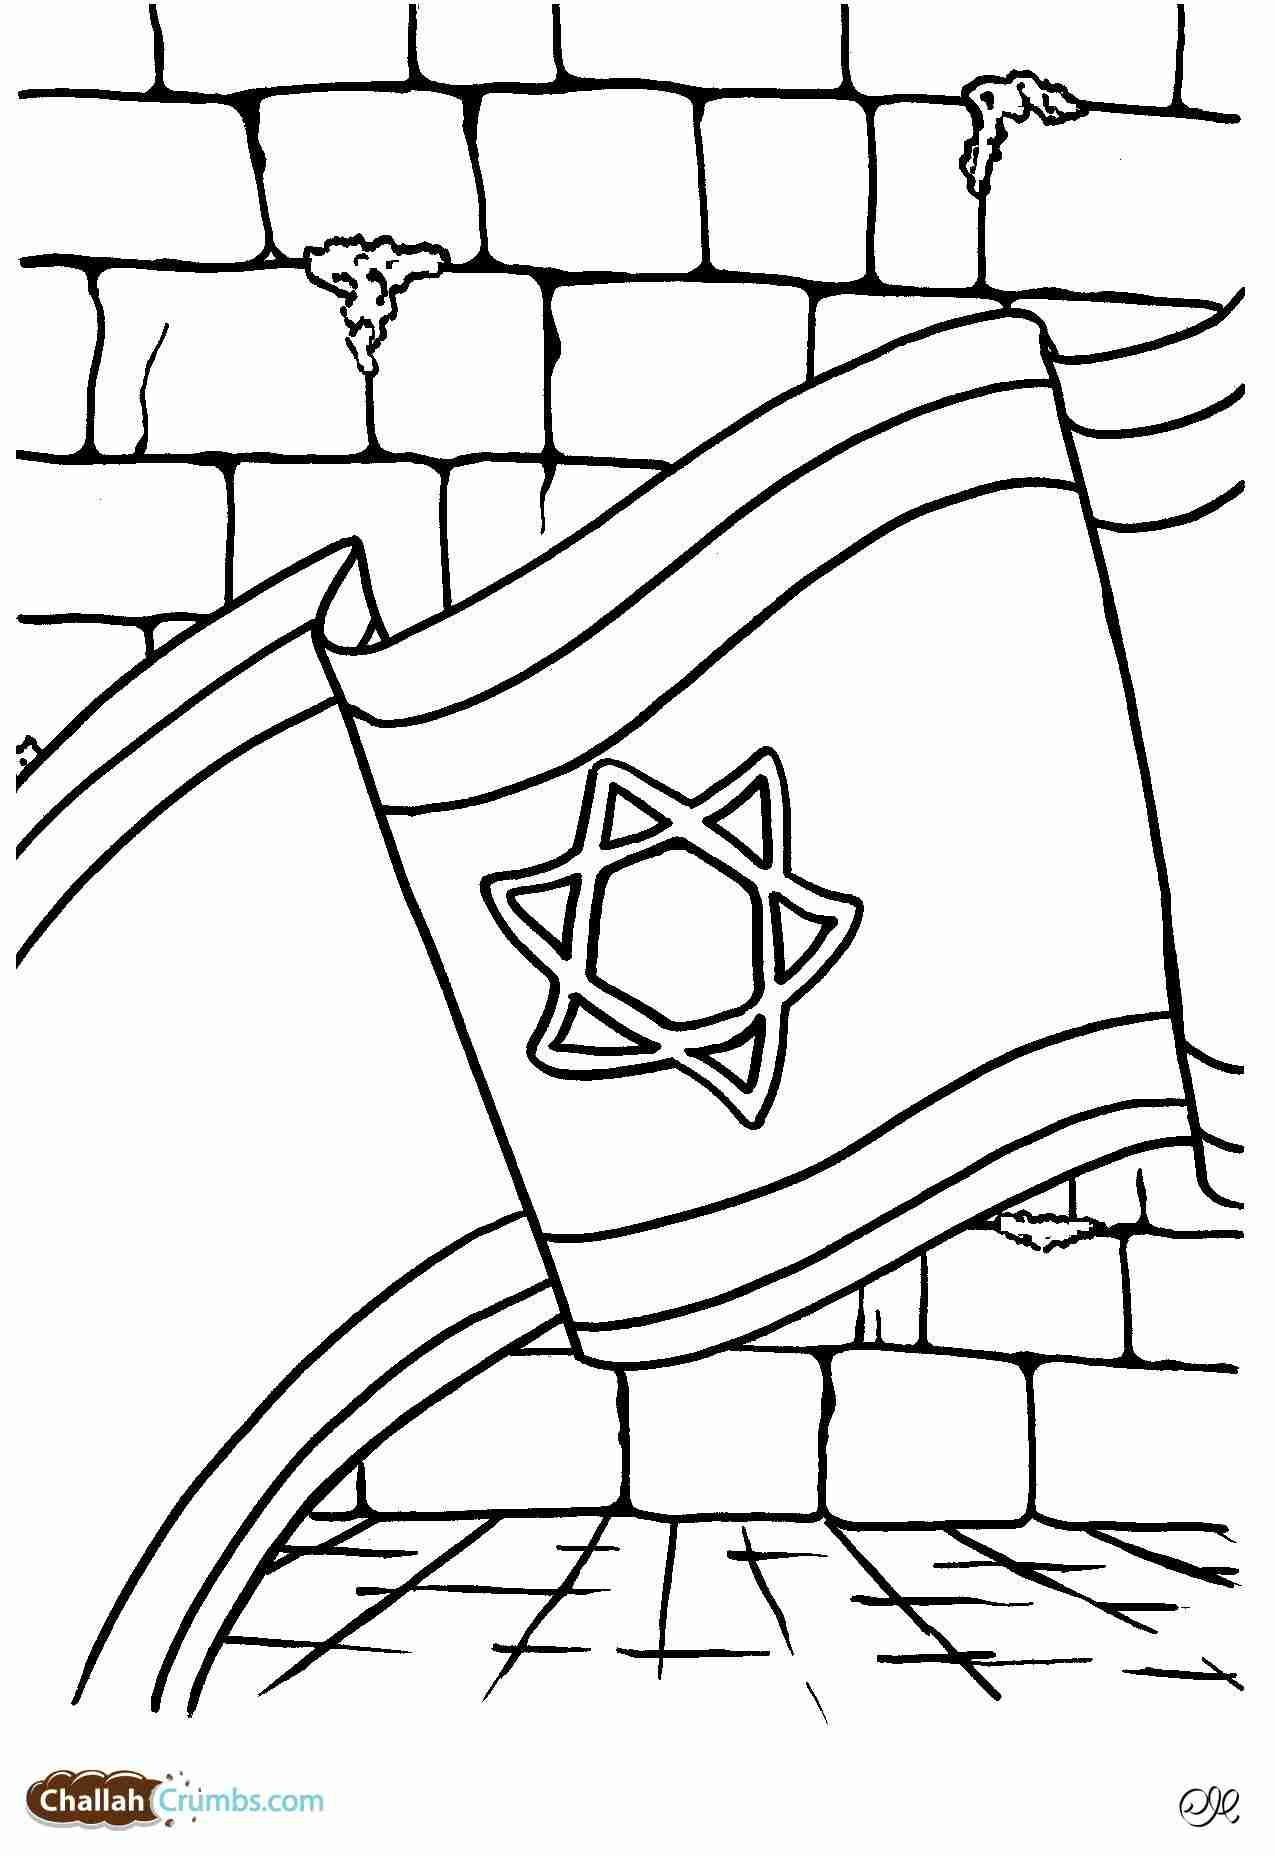 coloring flag kuwait flag coloring page coloring flag